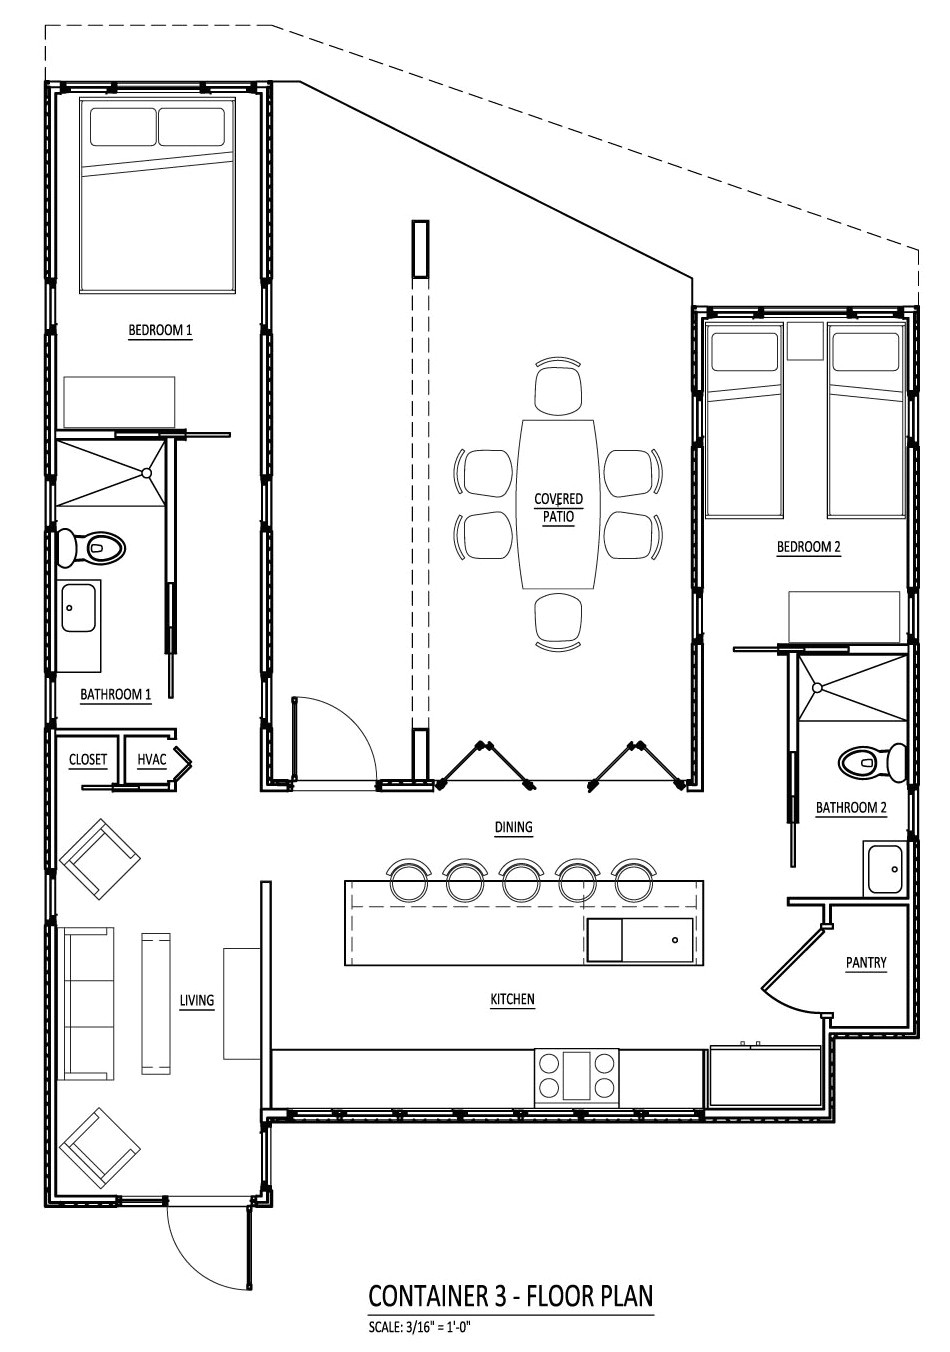 Plans for Shipping Container Homes Sense and Simplicity Shipping Container Homes 6